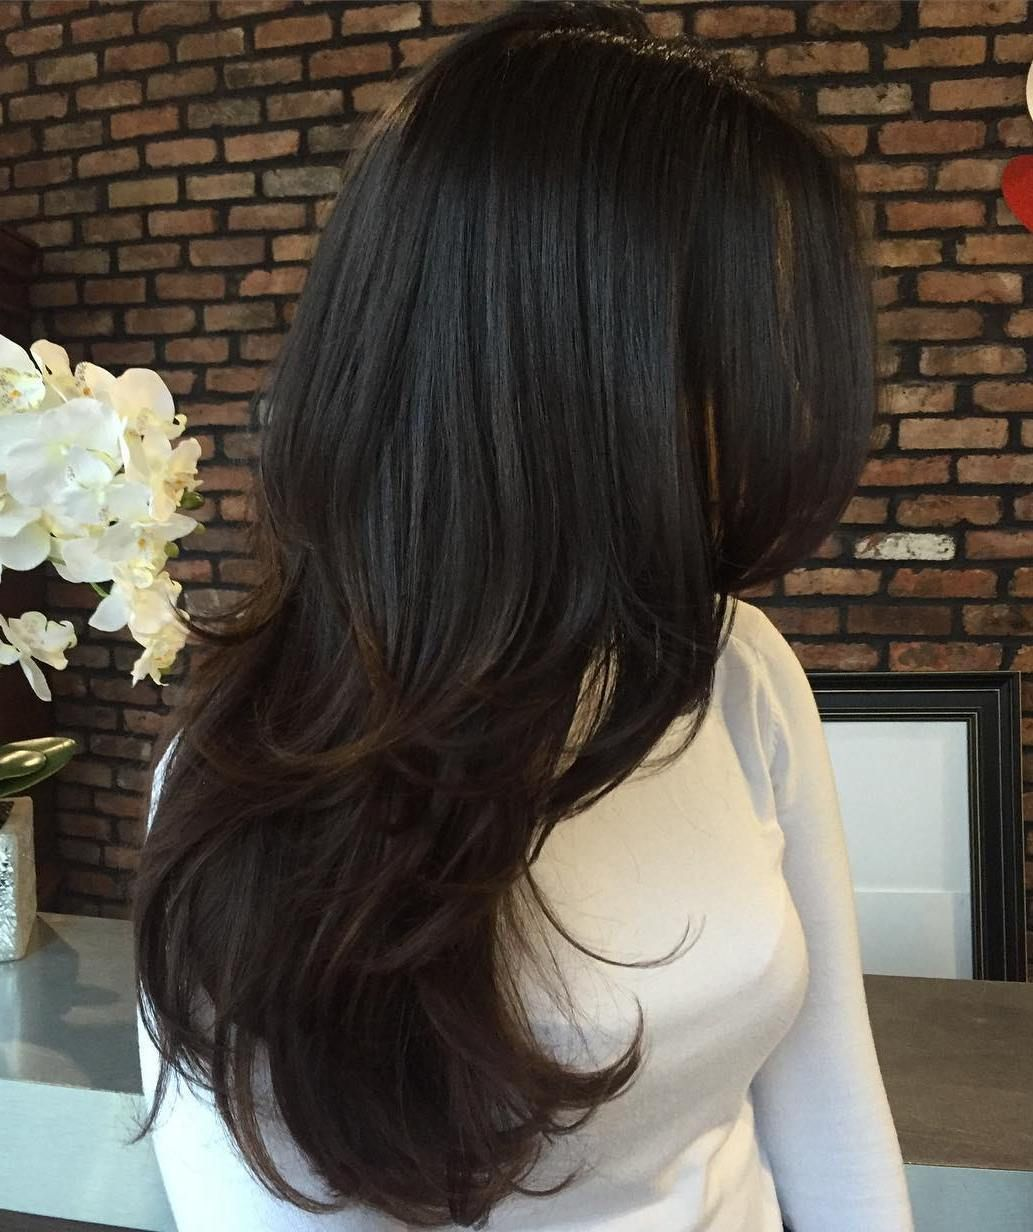 layered long hair style 80 layered hairstyles and cuts for hair hair 8326 | e0e0e98c91ae3c6c7ab43f9eb0d1f440